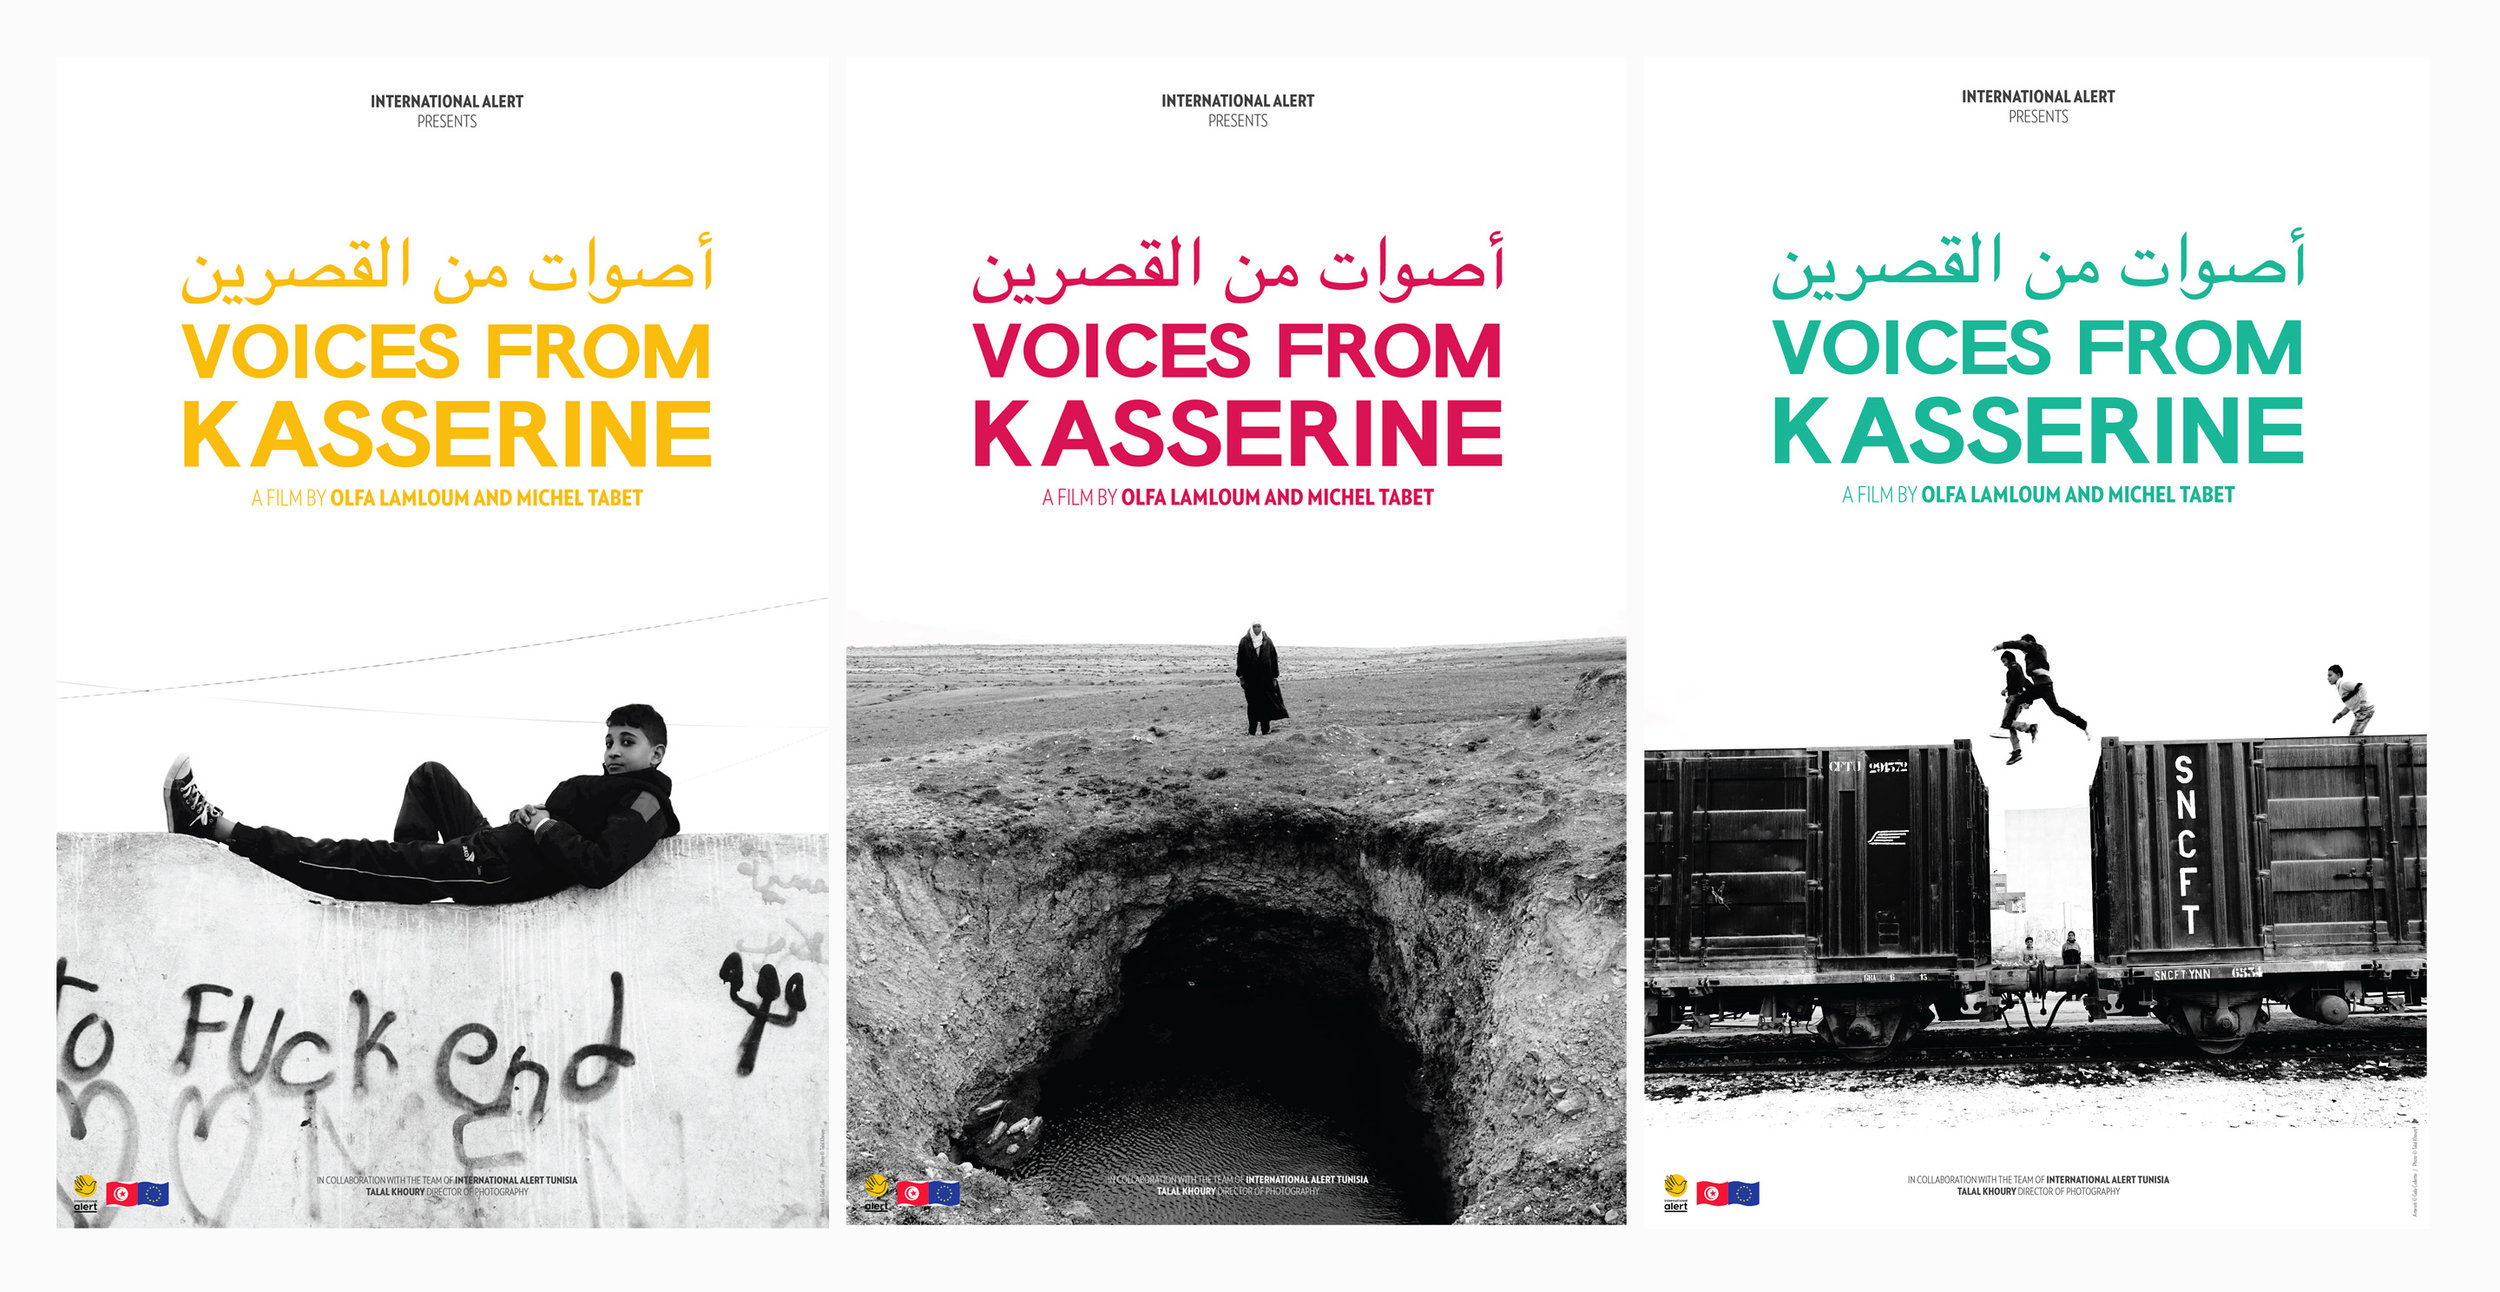 Voices from Kasserine — Campagne d'affichage